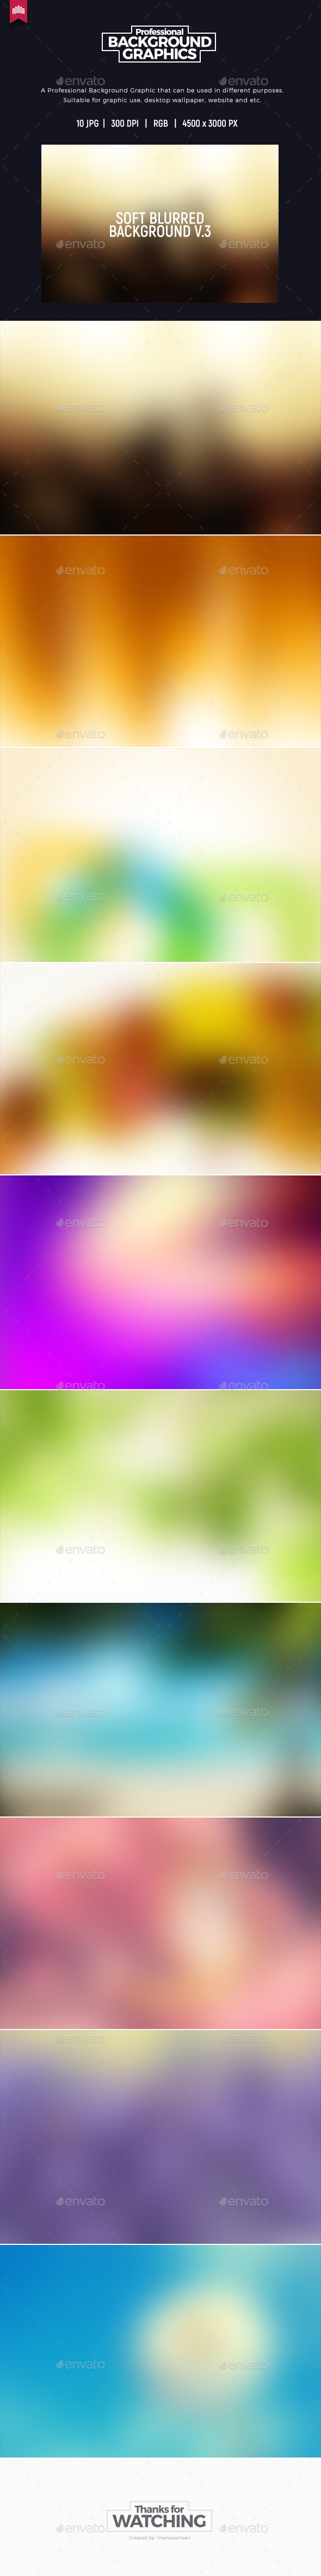 GraphicRiver Soft Blurred V.3 Background 20257493